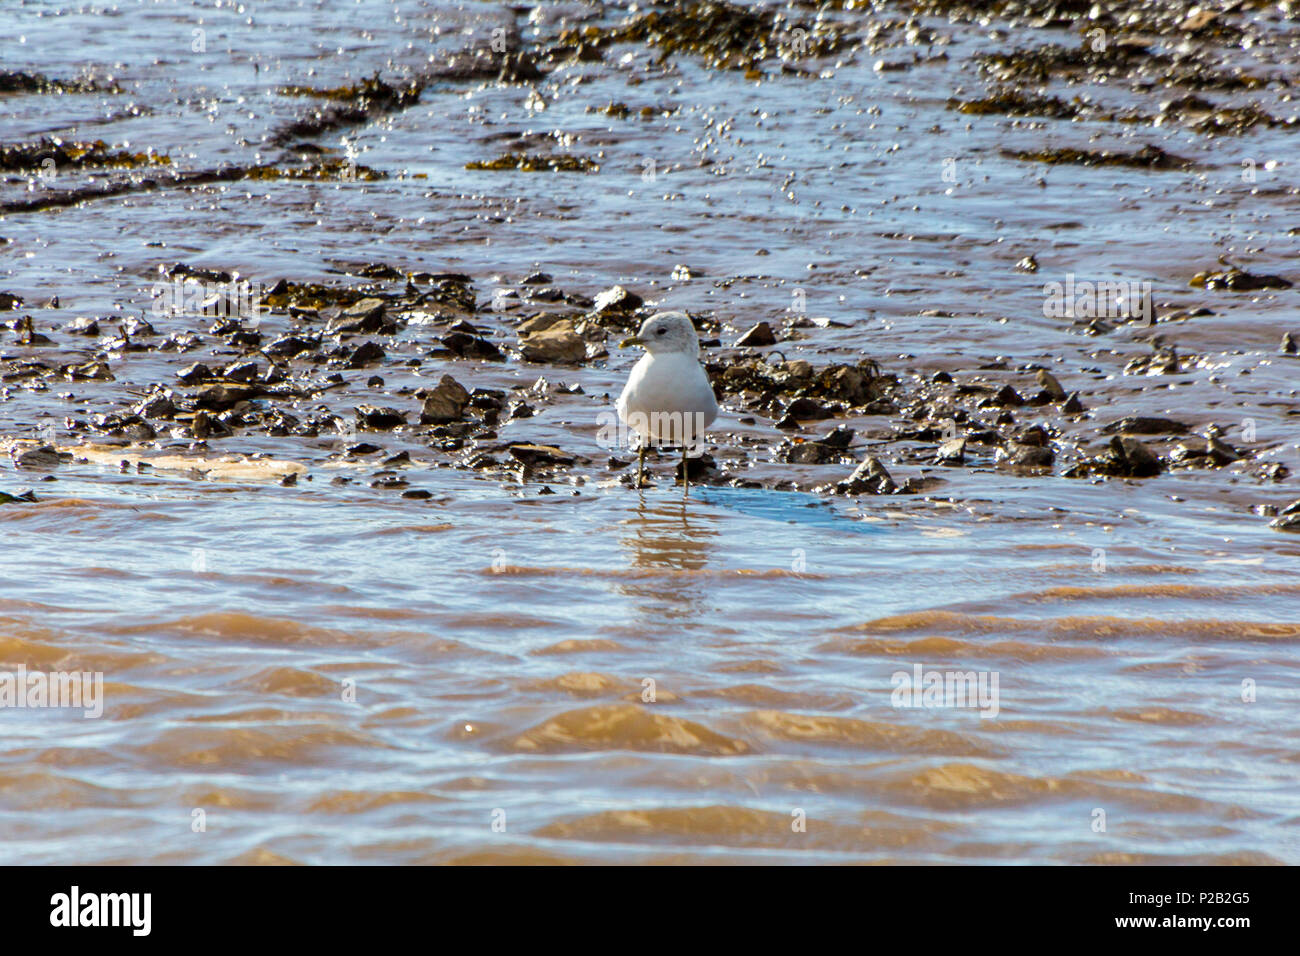 A solitary juvenile Common Gull (Larus canus) on the mudflats of the River Exe near Topsham, Devon, England, UK - Stock Image